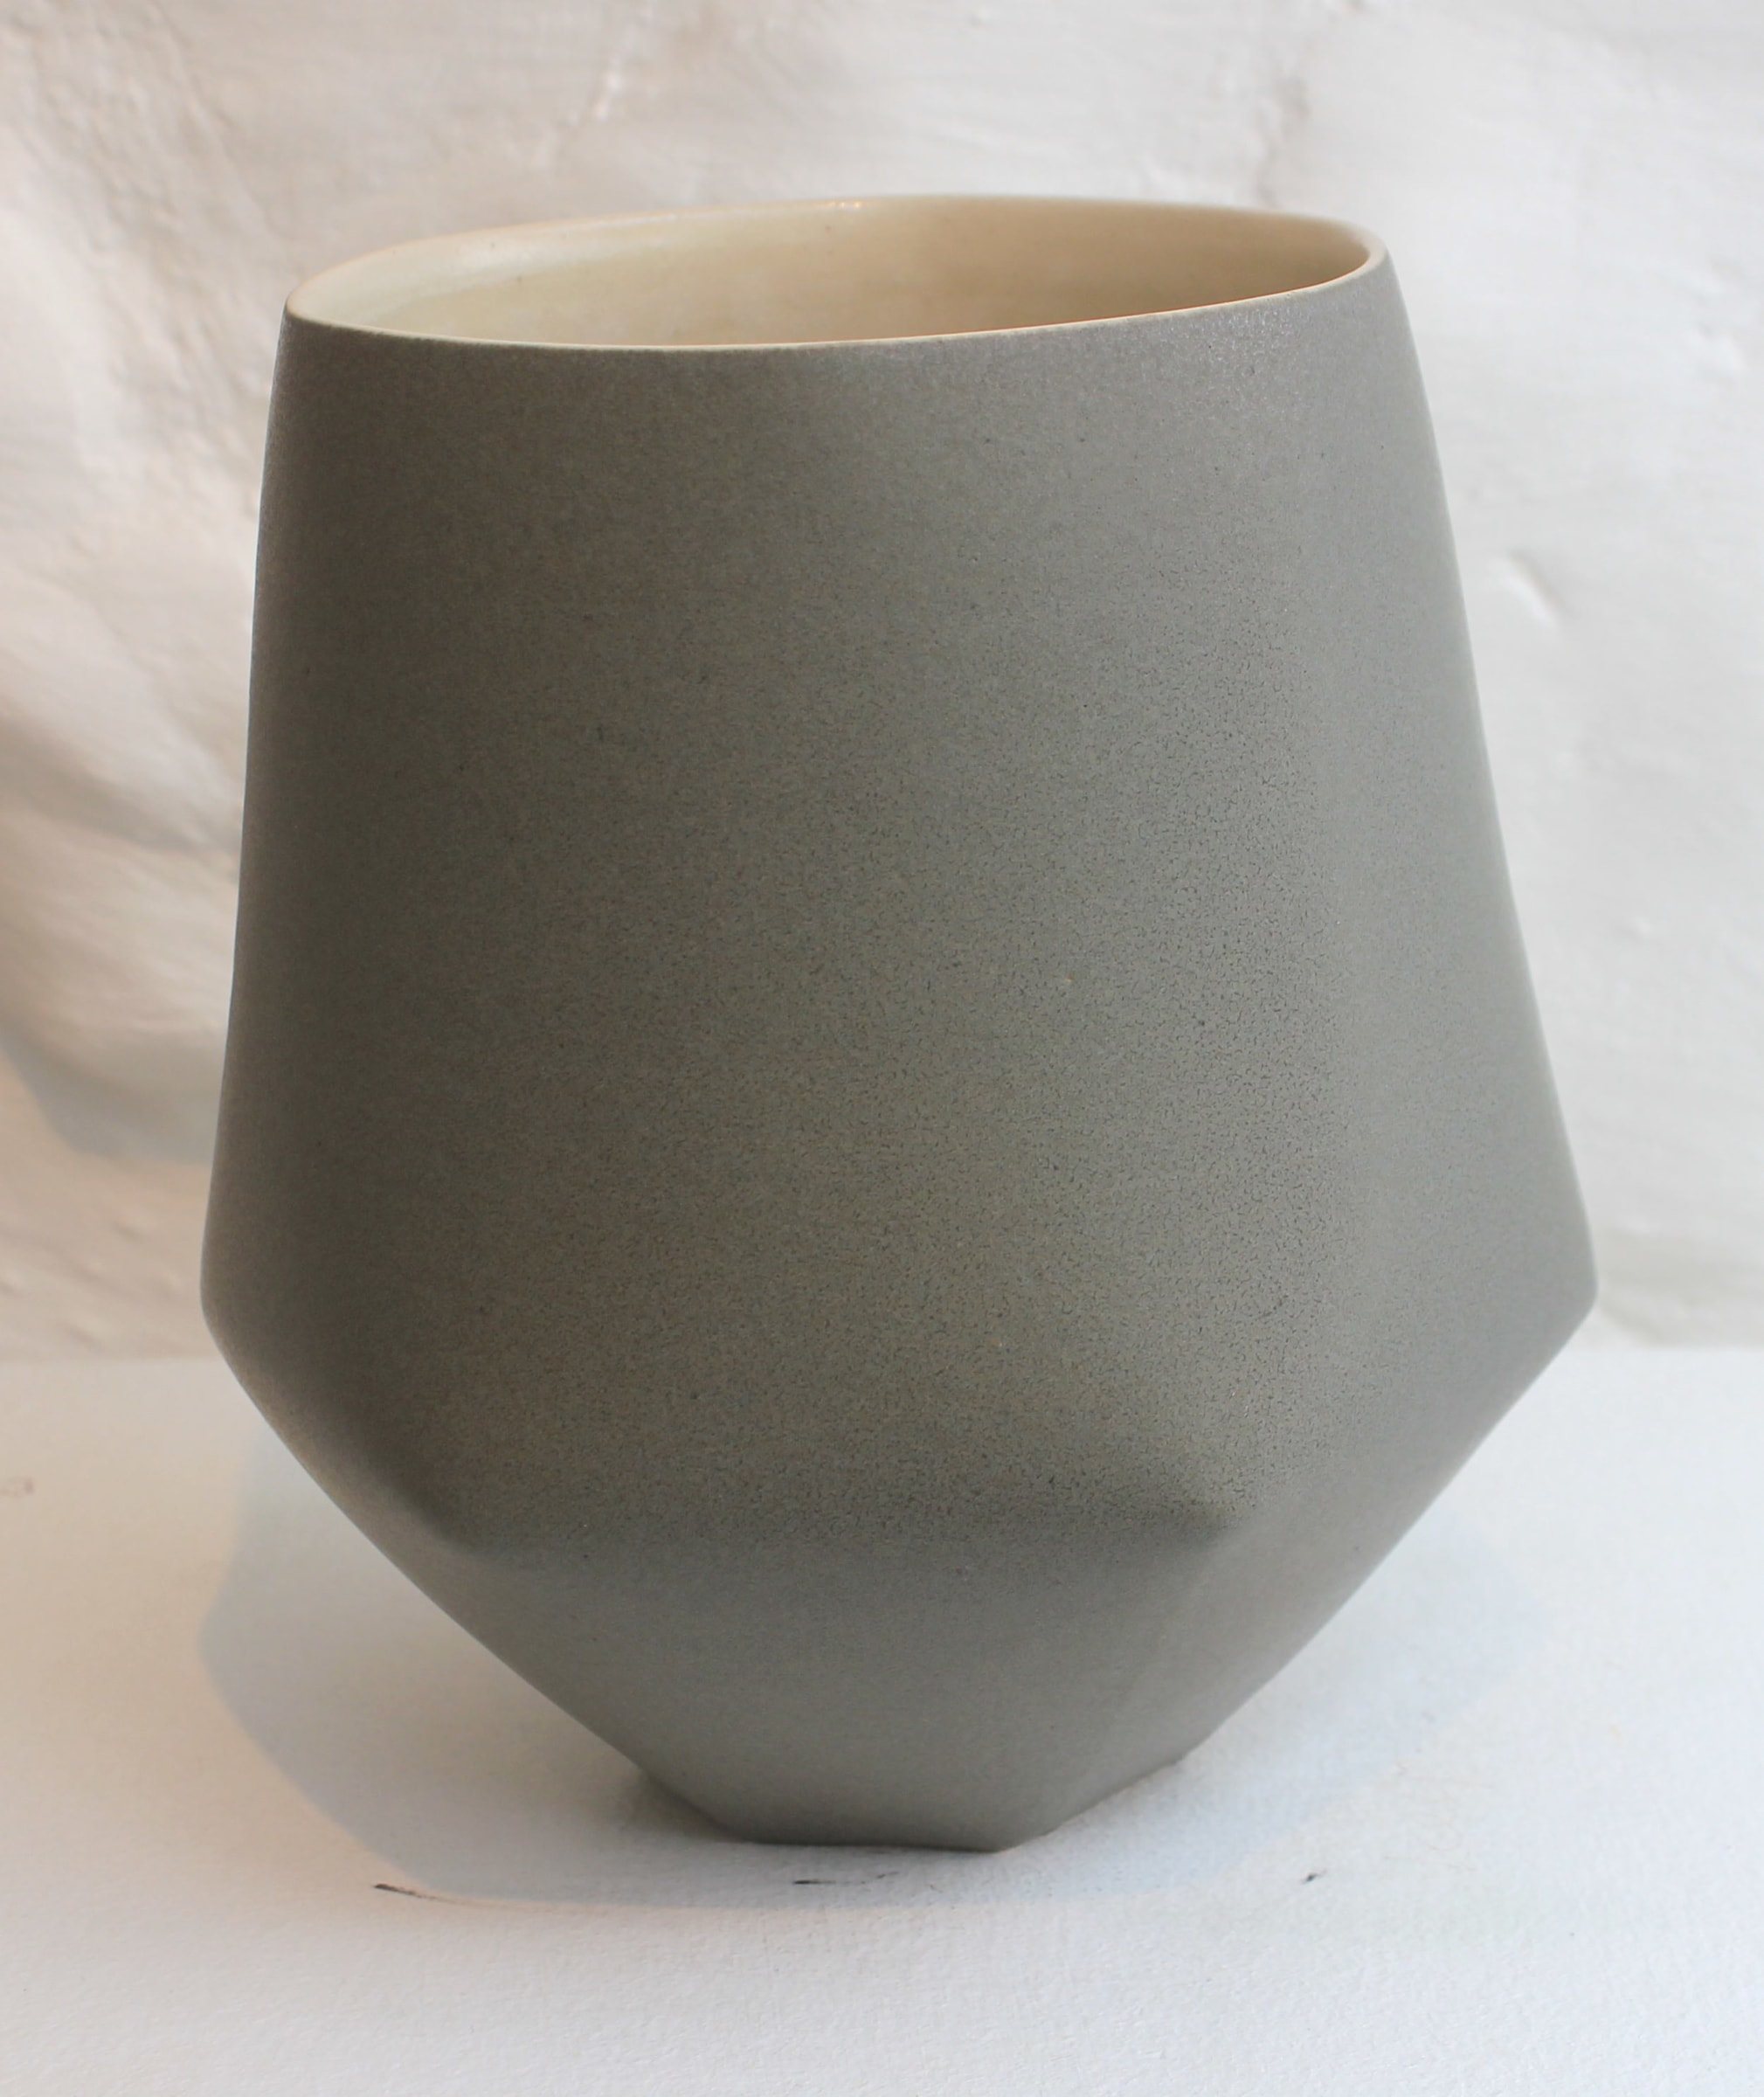 """<span class=""""link fancybox-details-link""""><a href=""""/artists/33-sun-kim/works/5737-sun-kim-medium-vase-2018/"""">View Detail Page</a></span><div class=""""artist""""><strong>Sun Kim</strong></div> <div class=""""title""""><em>Medium Vase</em>, 2018</div> <div class=""""signed_and_dated"""">stamped by the artist</div> <div class=""""medium"""">porcelain</div> <div class=""""dimensions"""">15 x 15 x 11 cm<br /> 5 7/8 x 5 7/8 x 4 3/8 inches</div><div class=""""price"""">£300.00</div><div class=""""copyright_line"""">OwnArt: £ 30 x 10 Months, 0% APR</div>"""